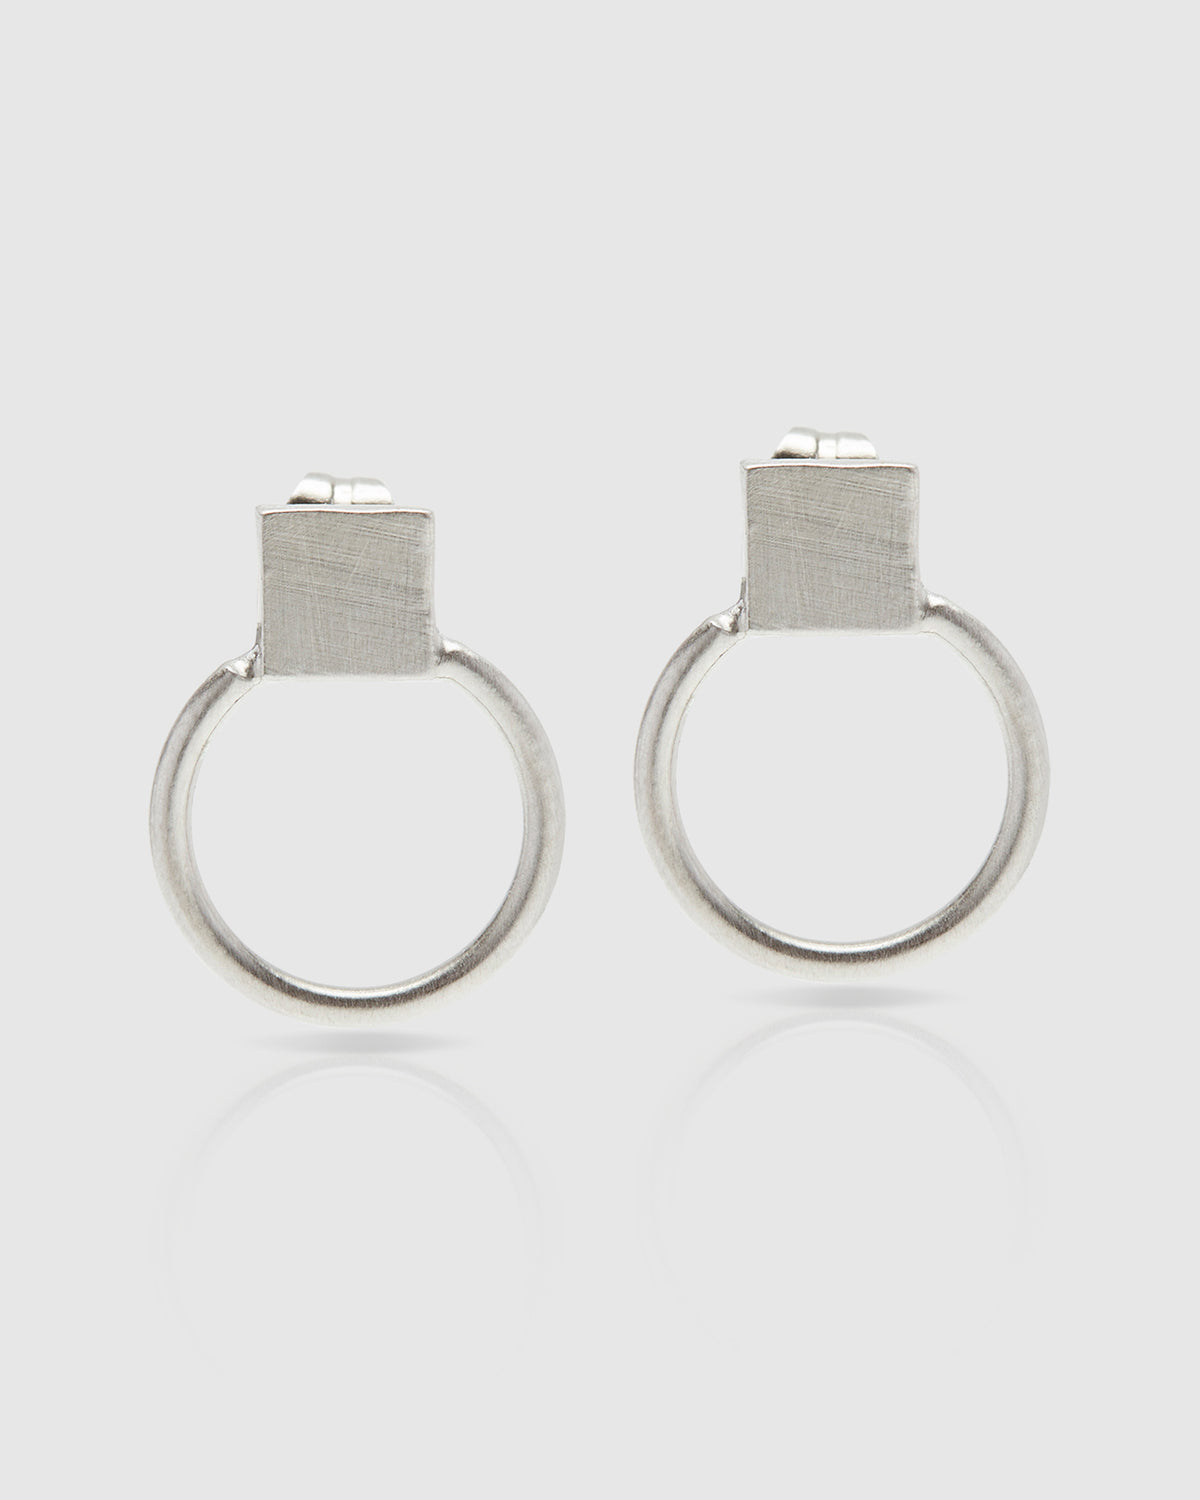 HARRIETA EARRINGS